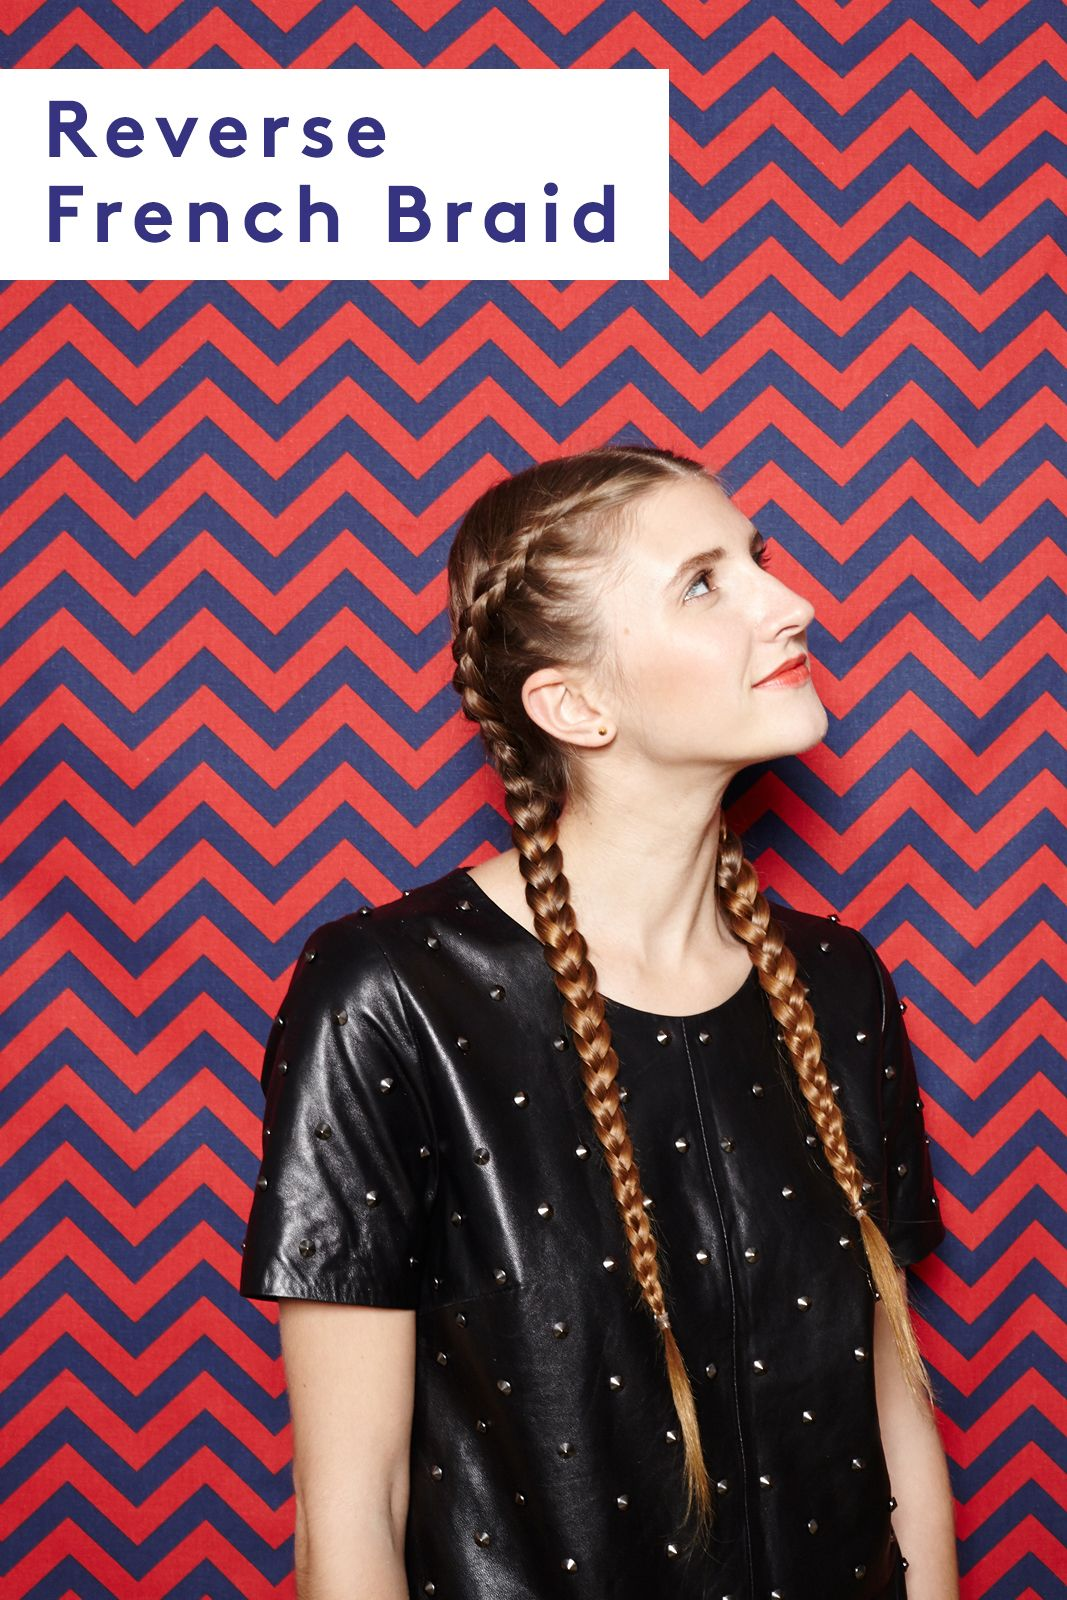 Double side haircut for boys  diy braids every girl should know  projects to try  pinterest